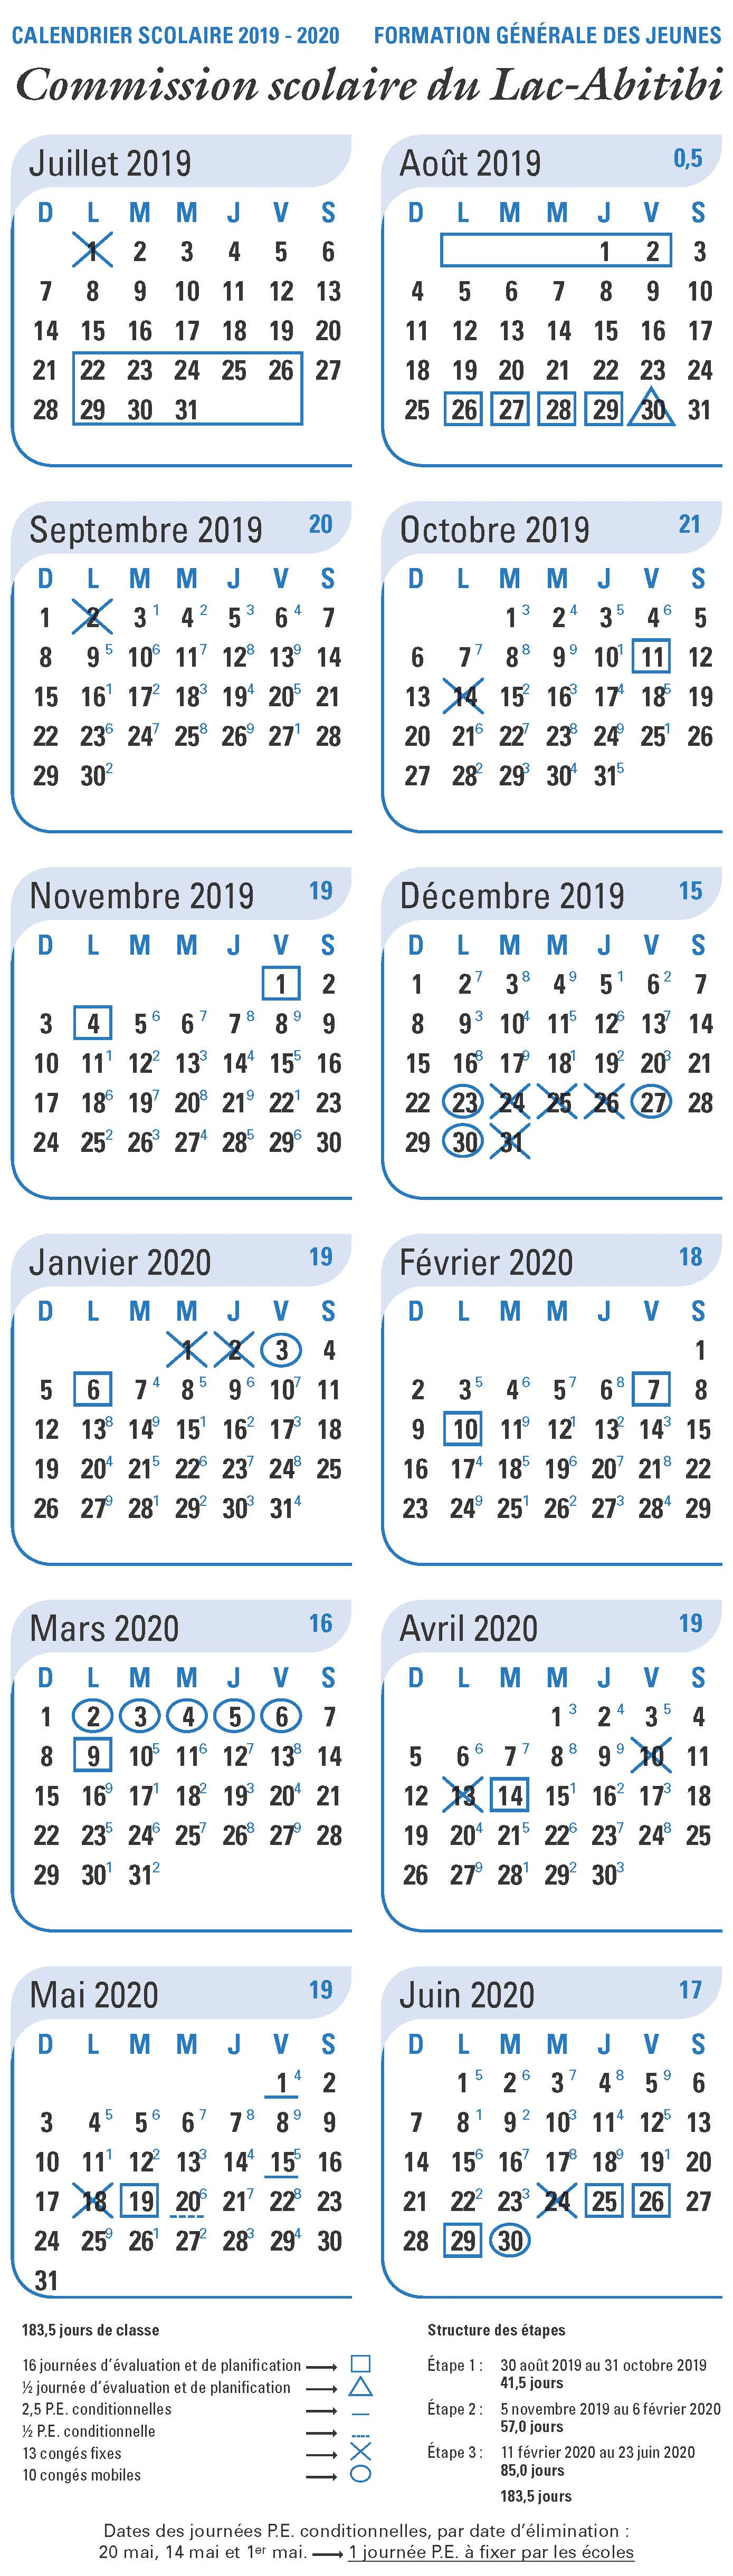 Calendrier 2019 2020 Ecole.Calendrier Scolaire 2019 2020